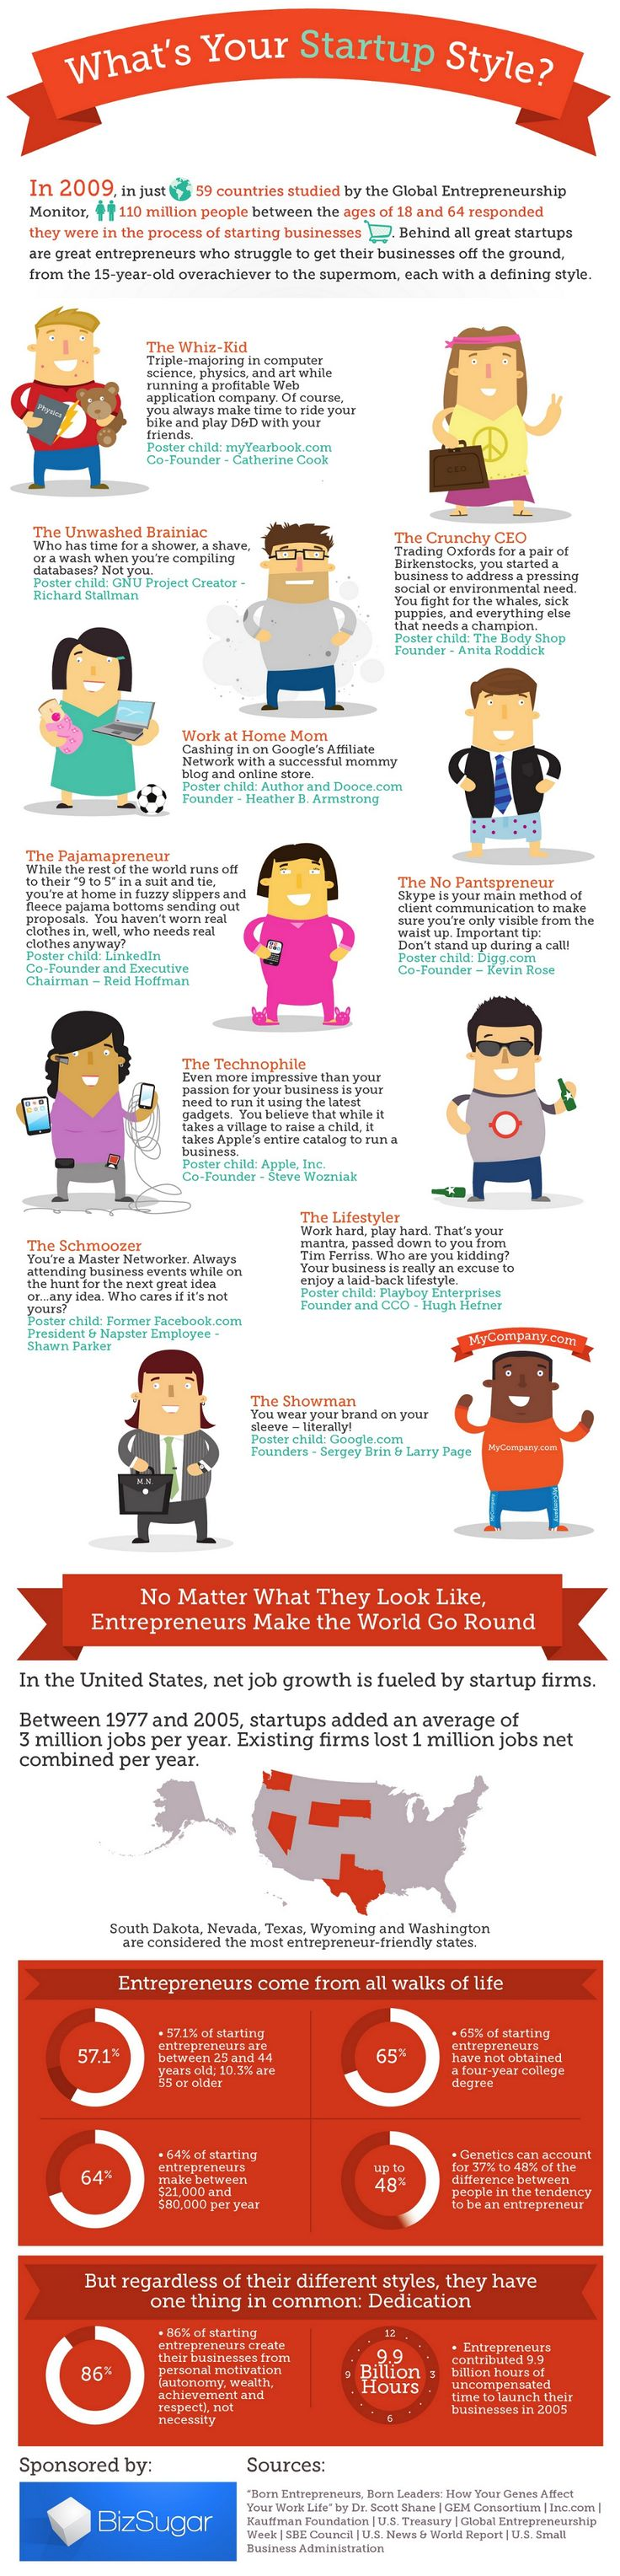 Behind all great startups are great entrepreneurs> 10 Entrepreneurial Styles: Which One Are You? [INFOGRAPHIC]